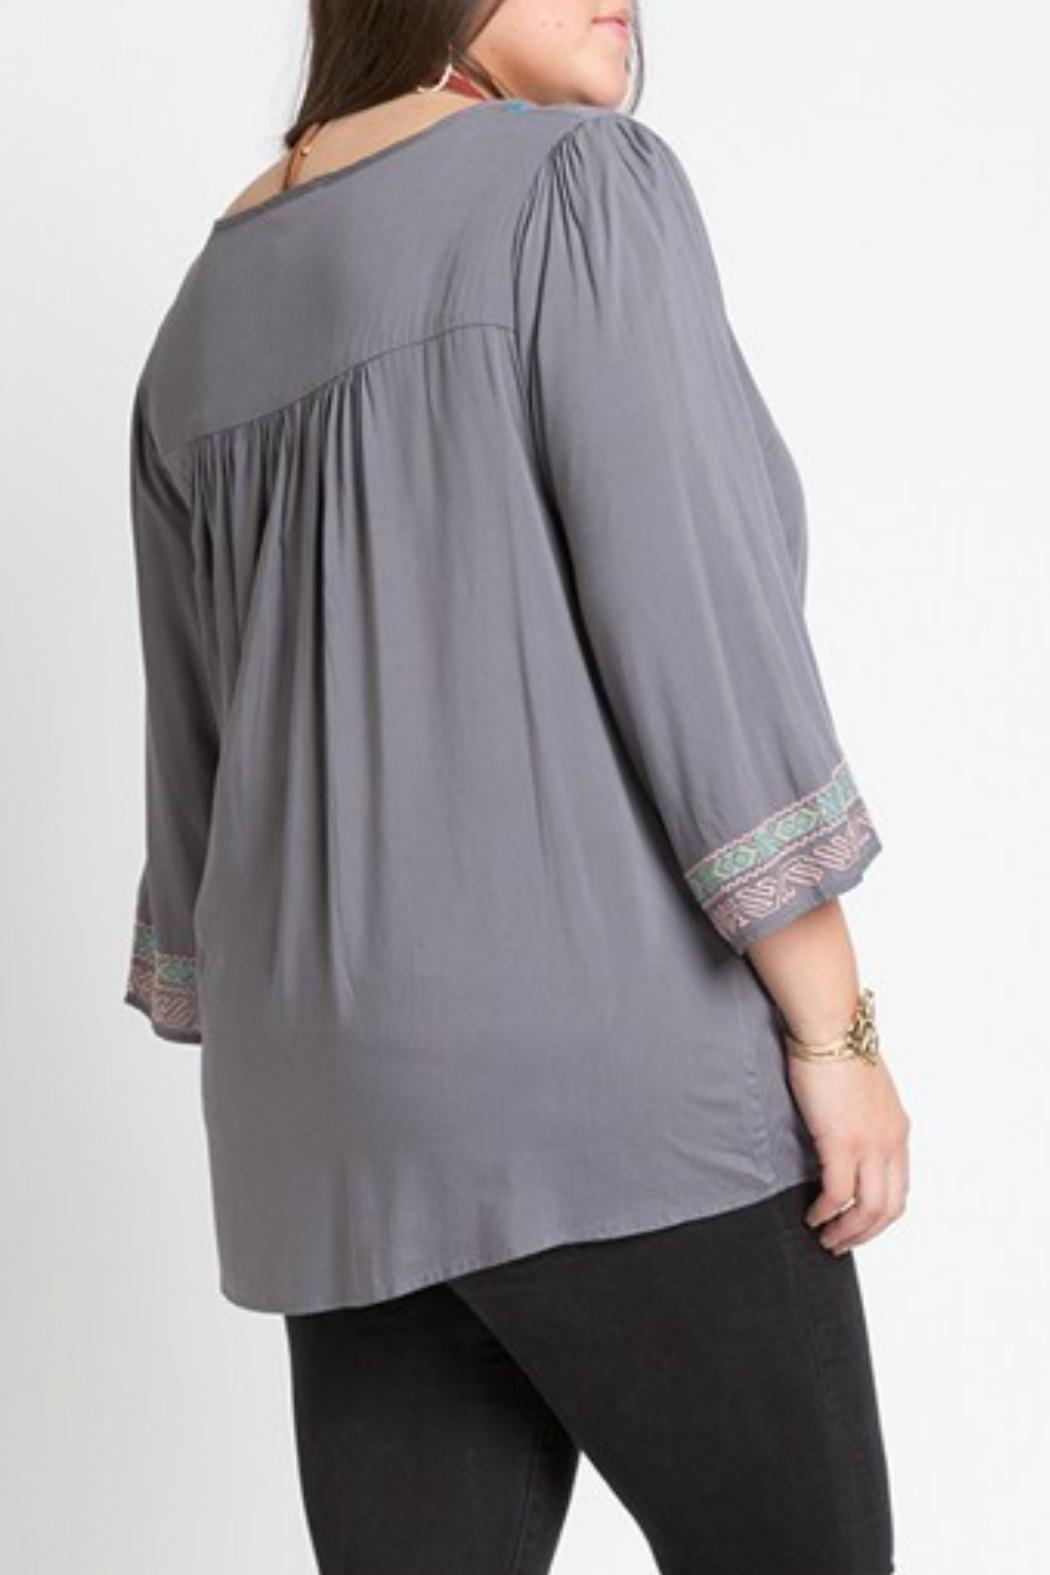 Izzie's Boutique Victoria Embroidered Blouse - Side Cropped Image